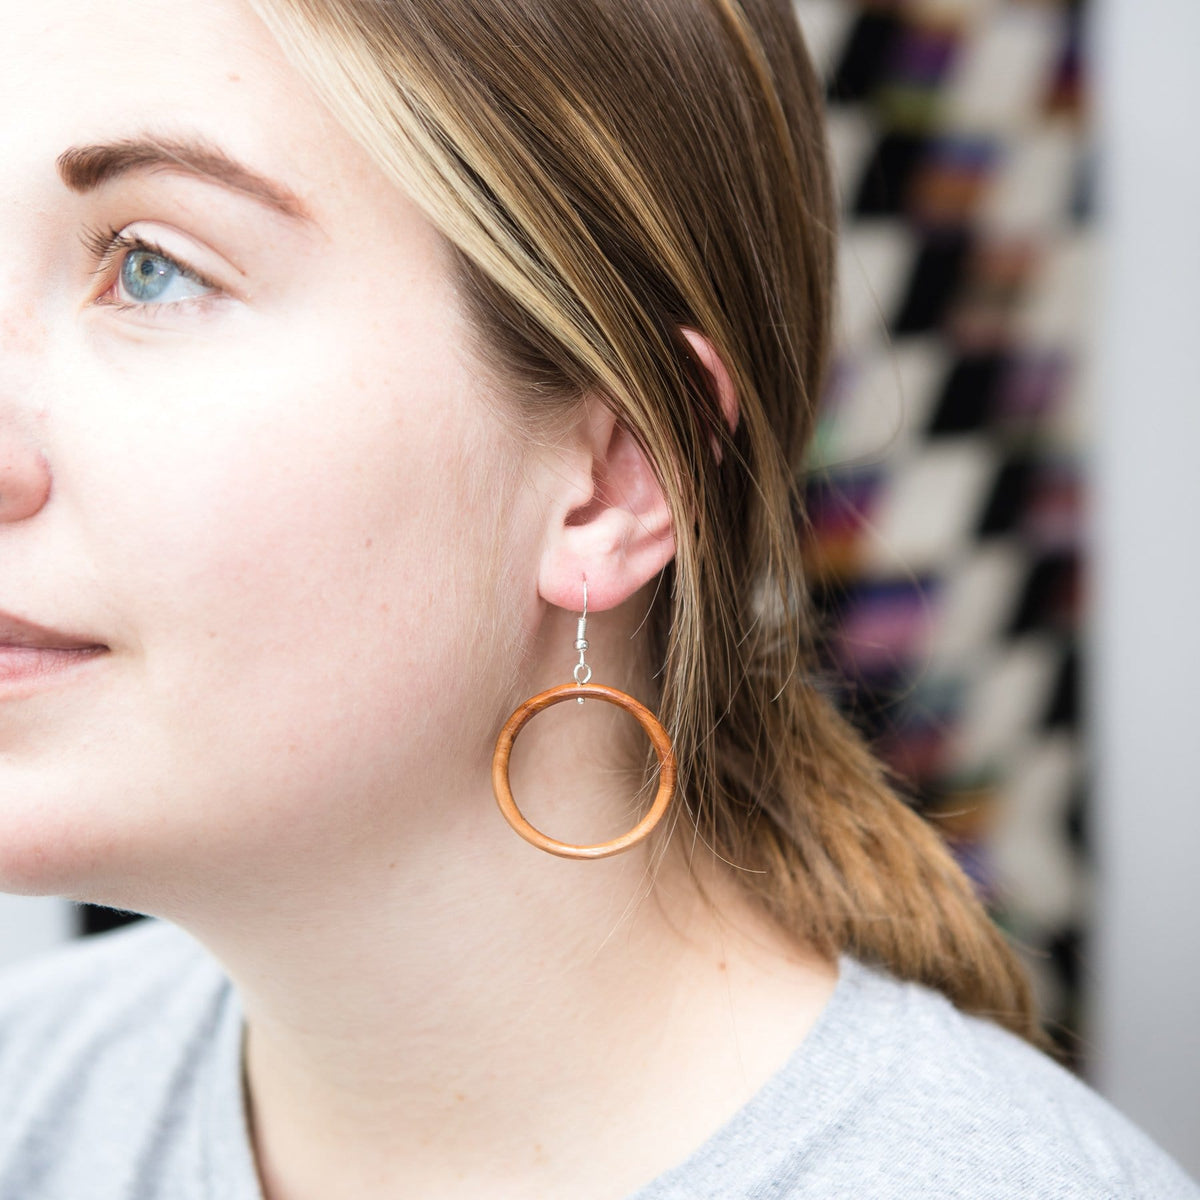 Model Wearing Fair Trade Wood Hoop Earrings